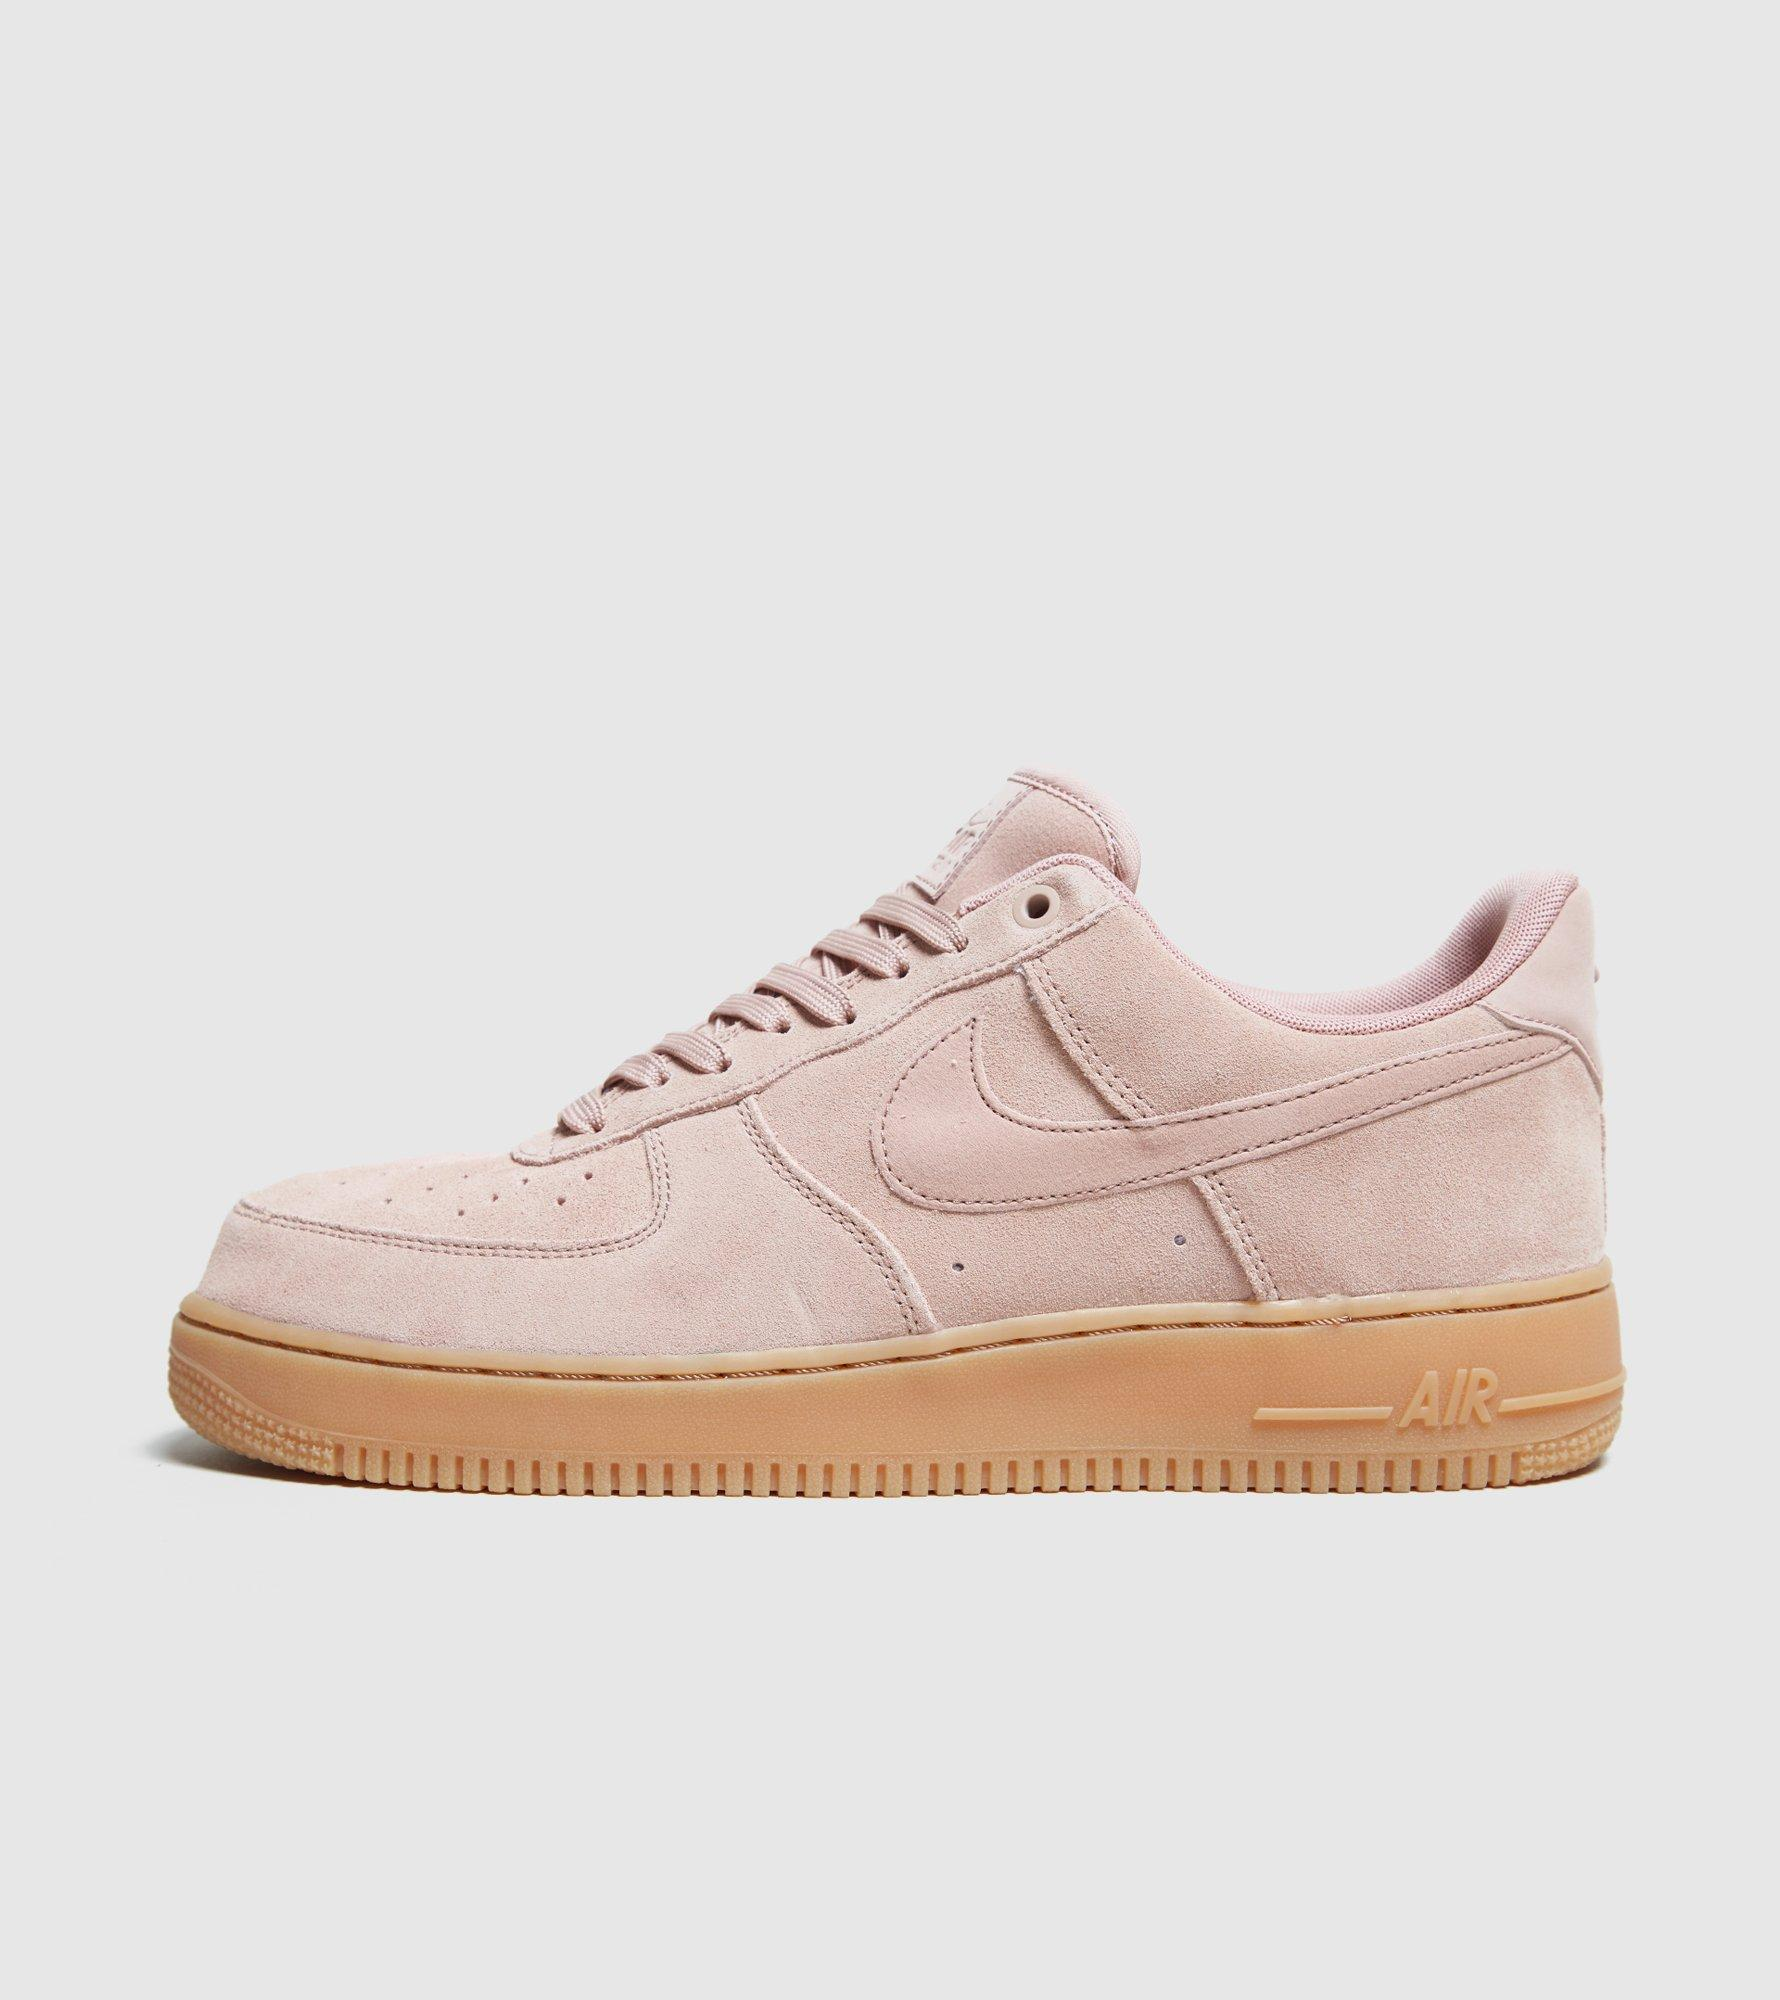 online store c1cb4 f744d greece nike air force 1 wmns upstep lx aluminium obsidian 880d5 fc75a   spain gallery. previously sold at size womens nike air force c4dcf 3e6b8